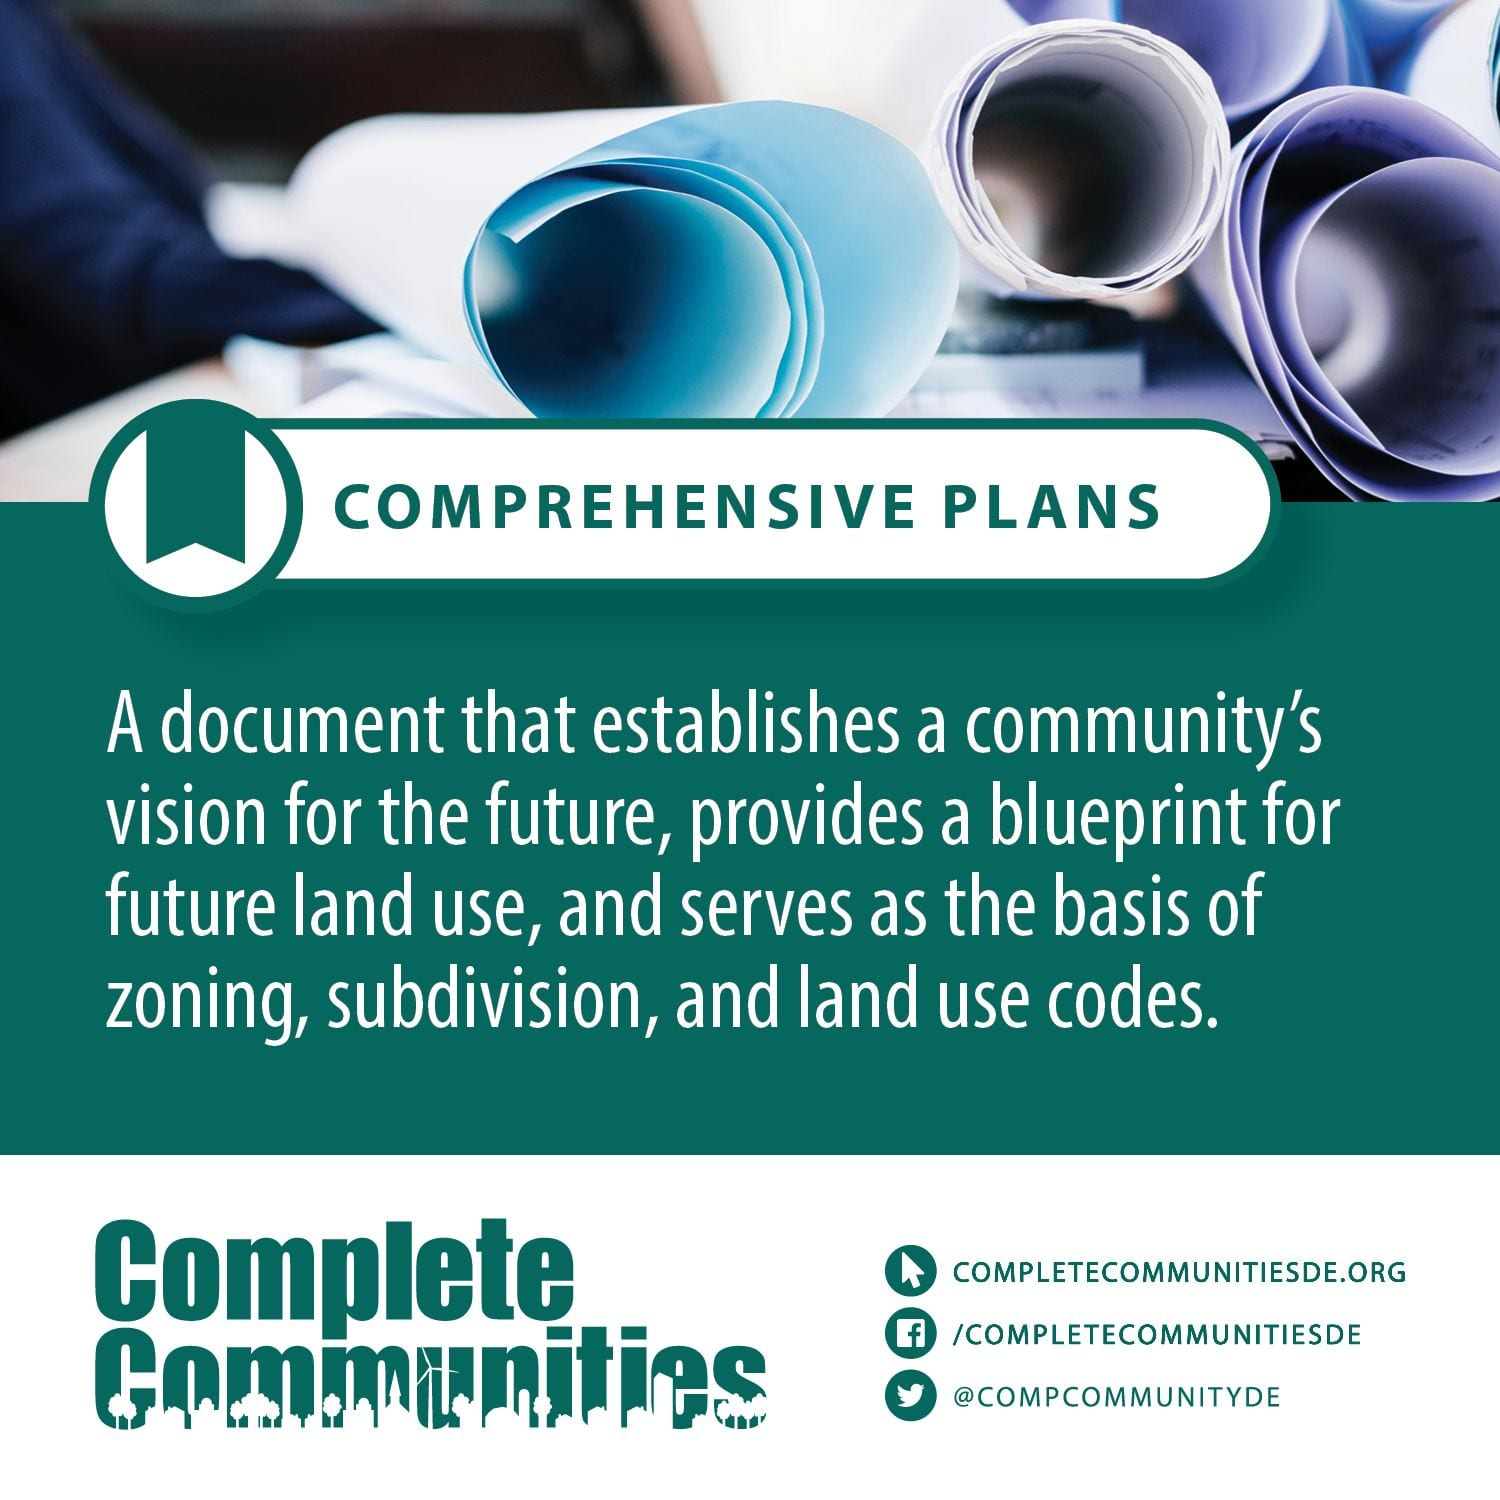 Comprehensive Plans: A document that establishes a community's vision for the future, provides a blueprint for future land use, and serves as the basis of zoning, subdivision, and land use codes.